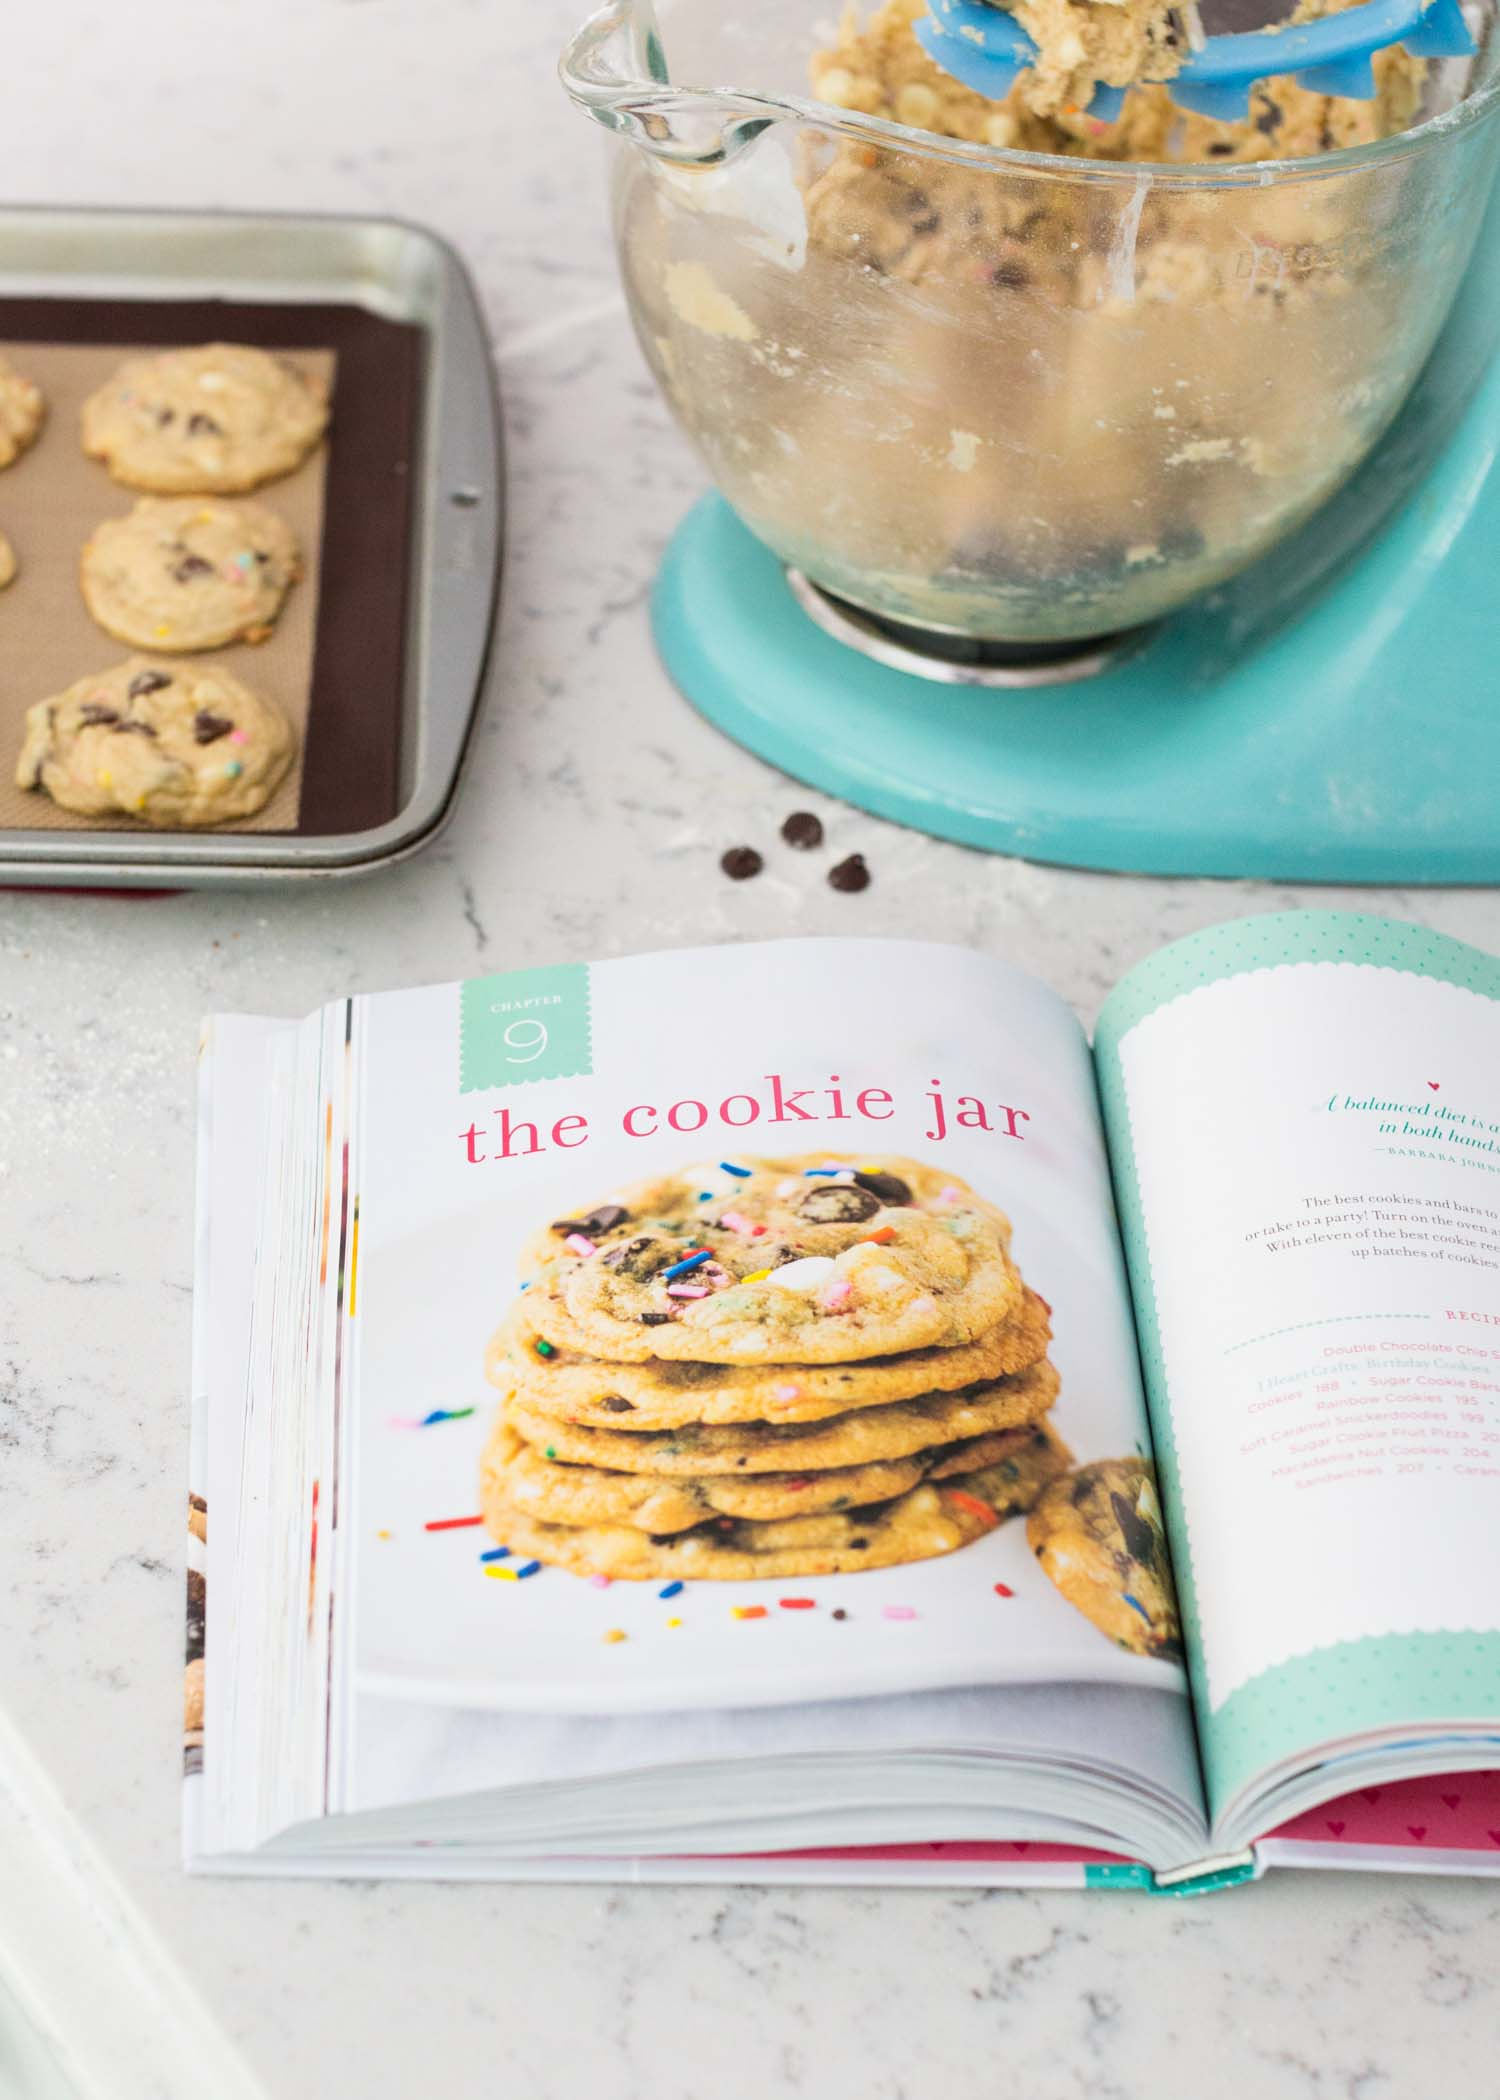 So many delicious COOKIE recipes in the new I Heart Naptime cookbook -- you NEED this!